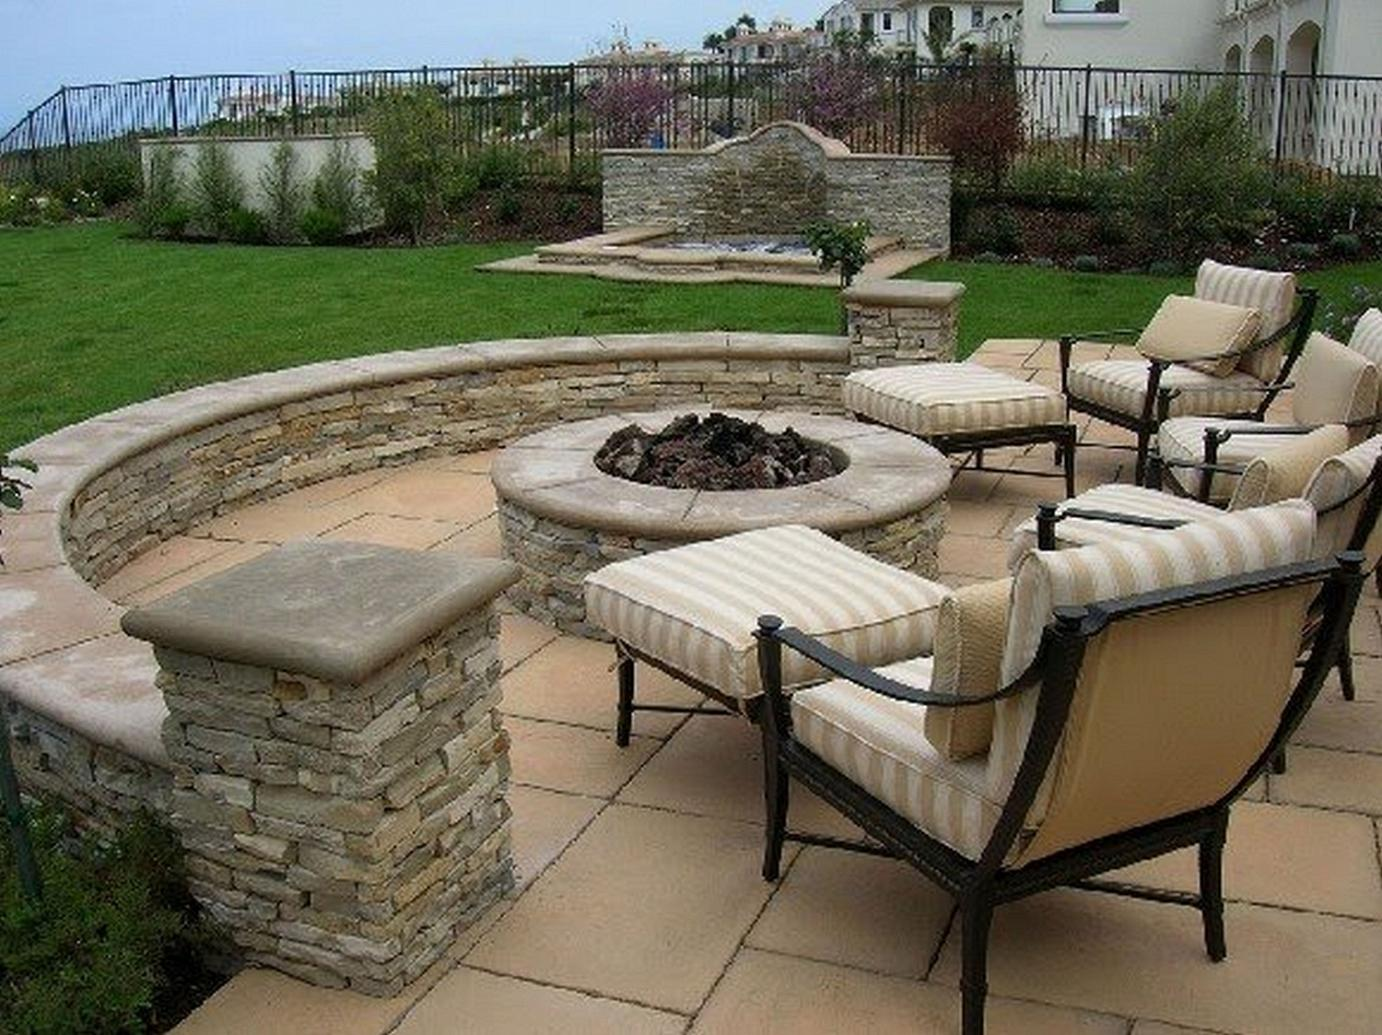 Backyard patio ideas on a budget large and beautiful for Backyard patio ideas pictures